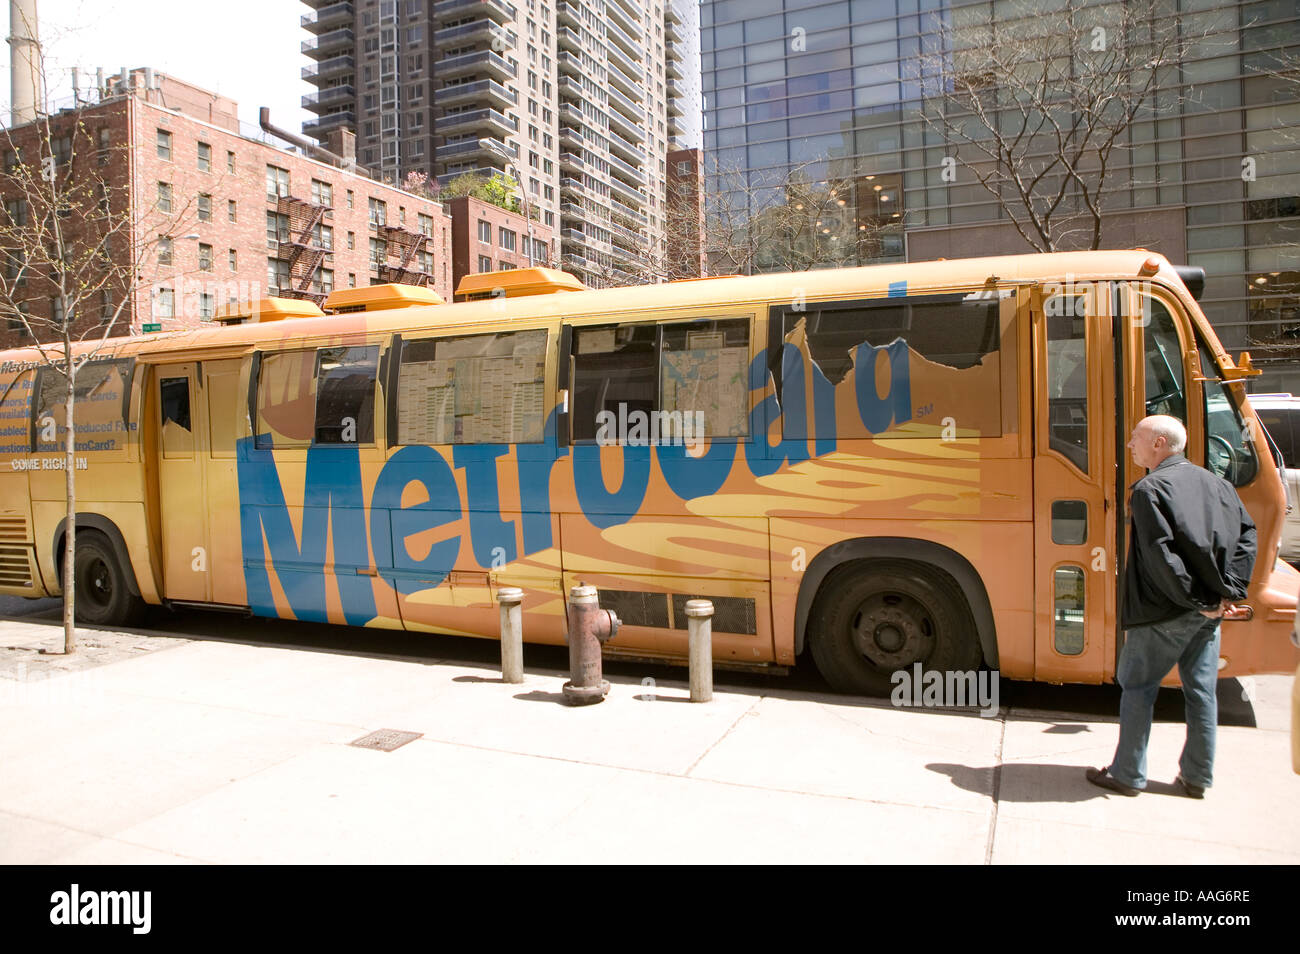 People wait to enter a Metrocard bus in a street in New York City USA April 2006 Stock Photo